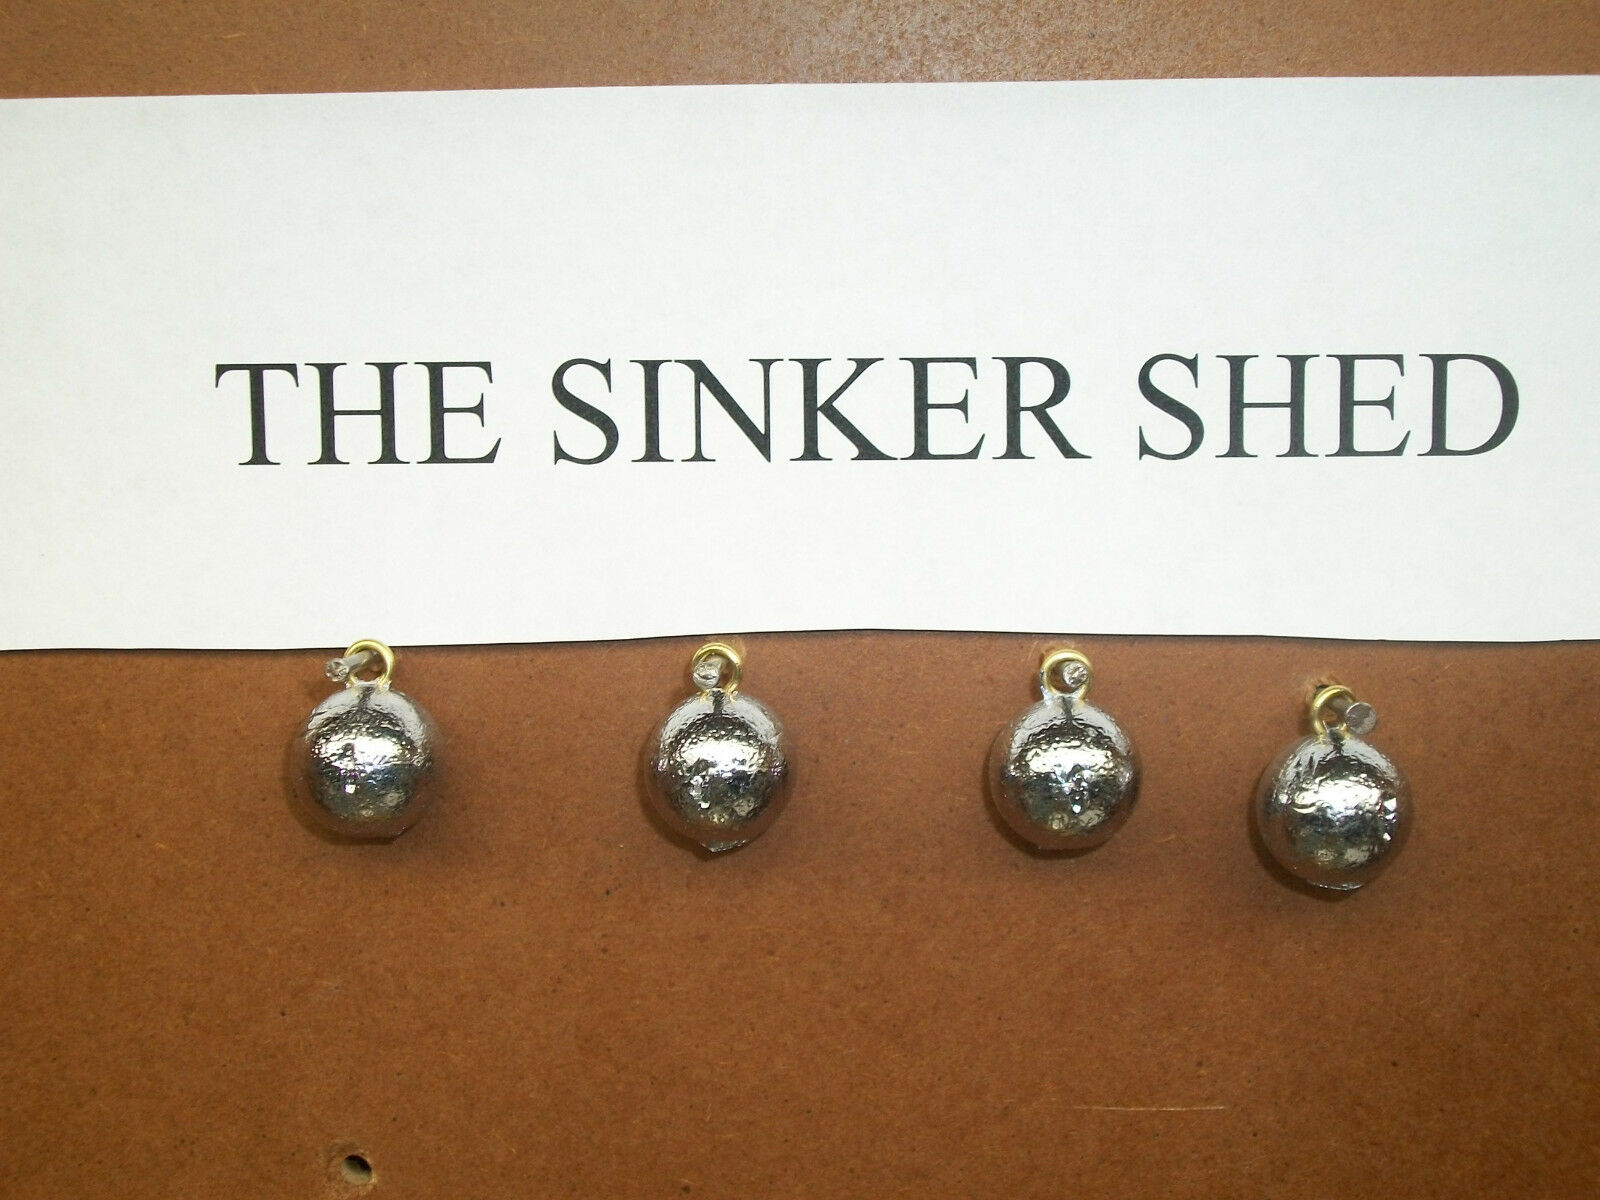 1 oz cannonball sinkers - choose quantity 10/25/50/100 - FREE SHIPPING